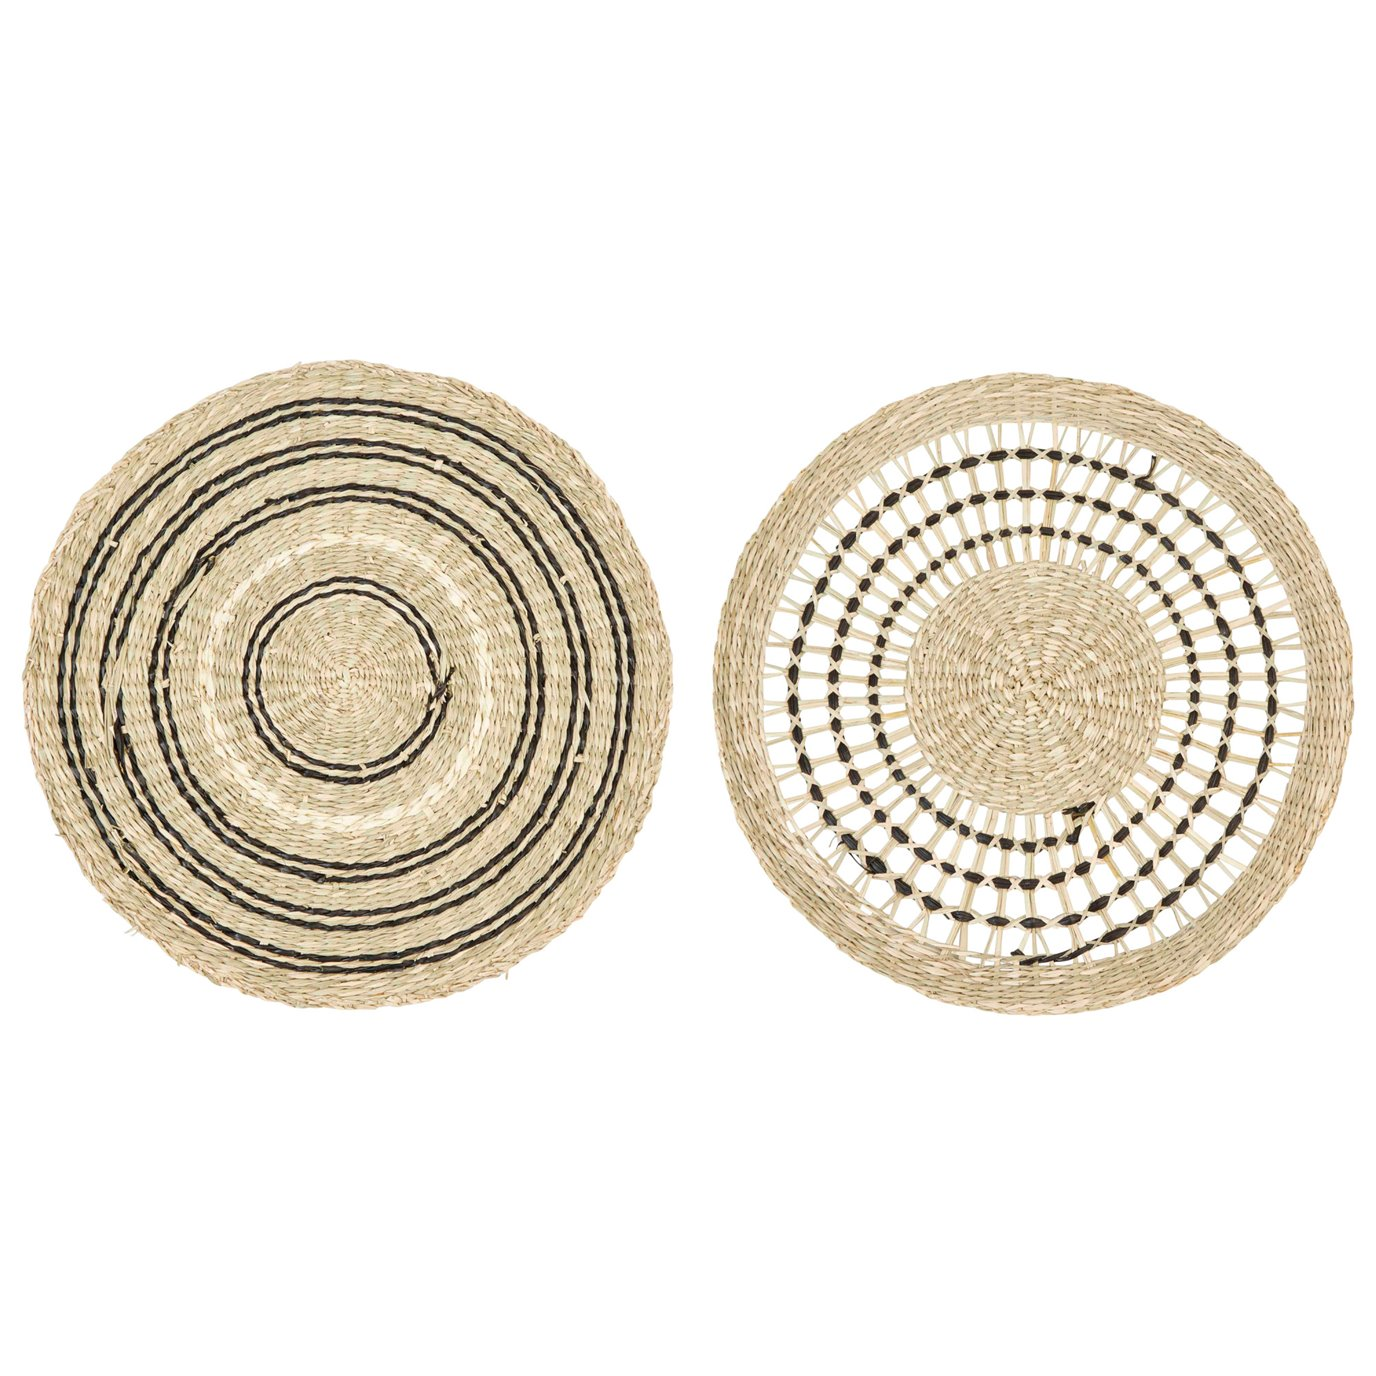 """15"""" Round Handwoven Seagrass Placemat (Set of 2 Styles)"""